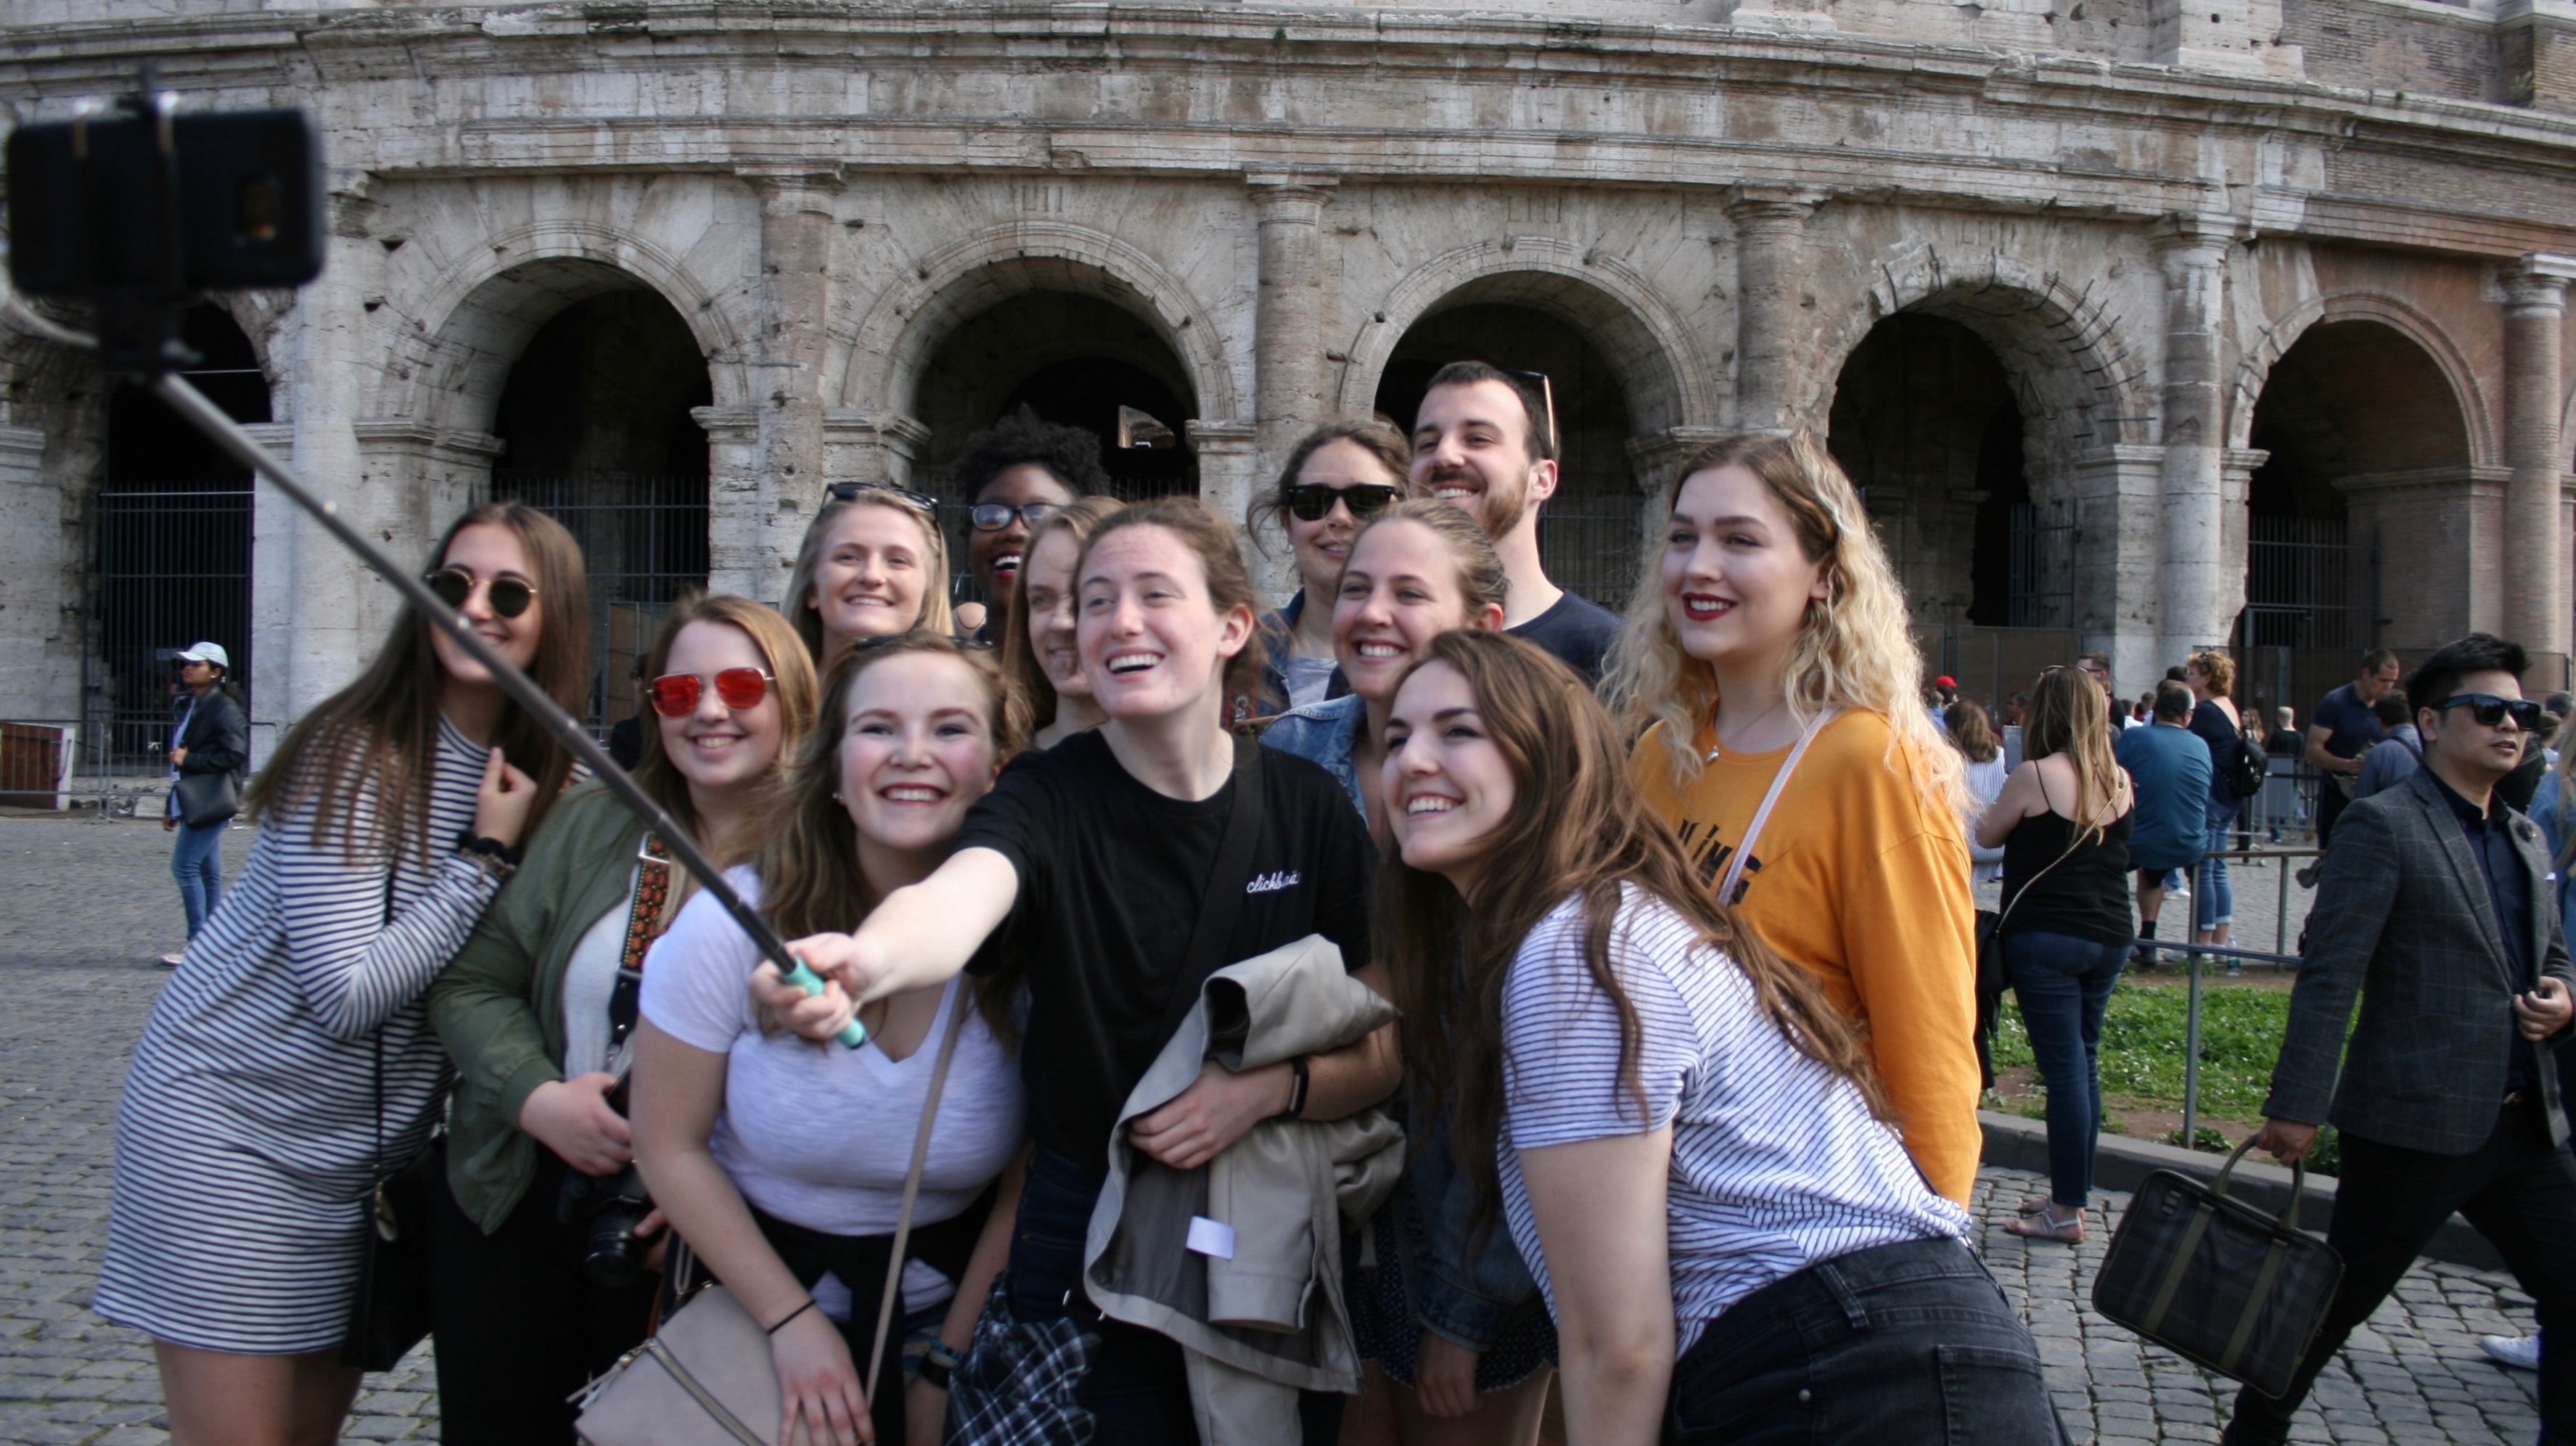 Our group takes a selfie in front of the Coliseum in Rome. Photo by Dennis Chamberlin